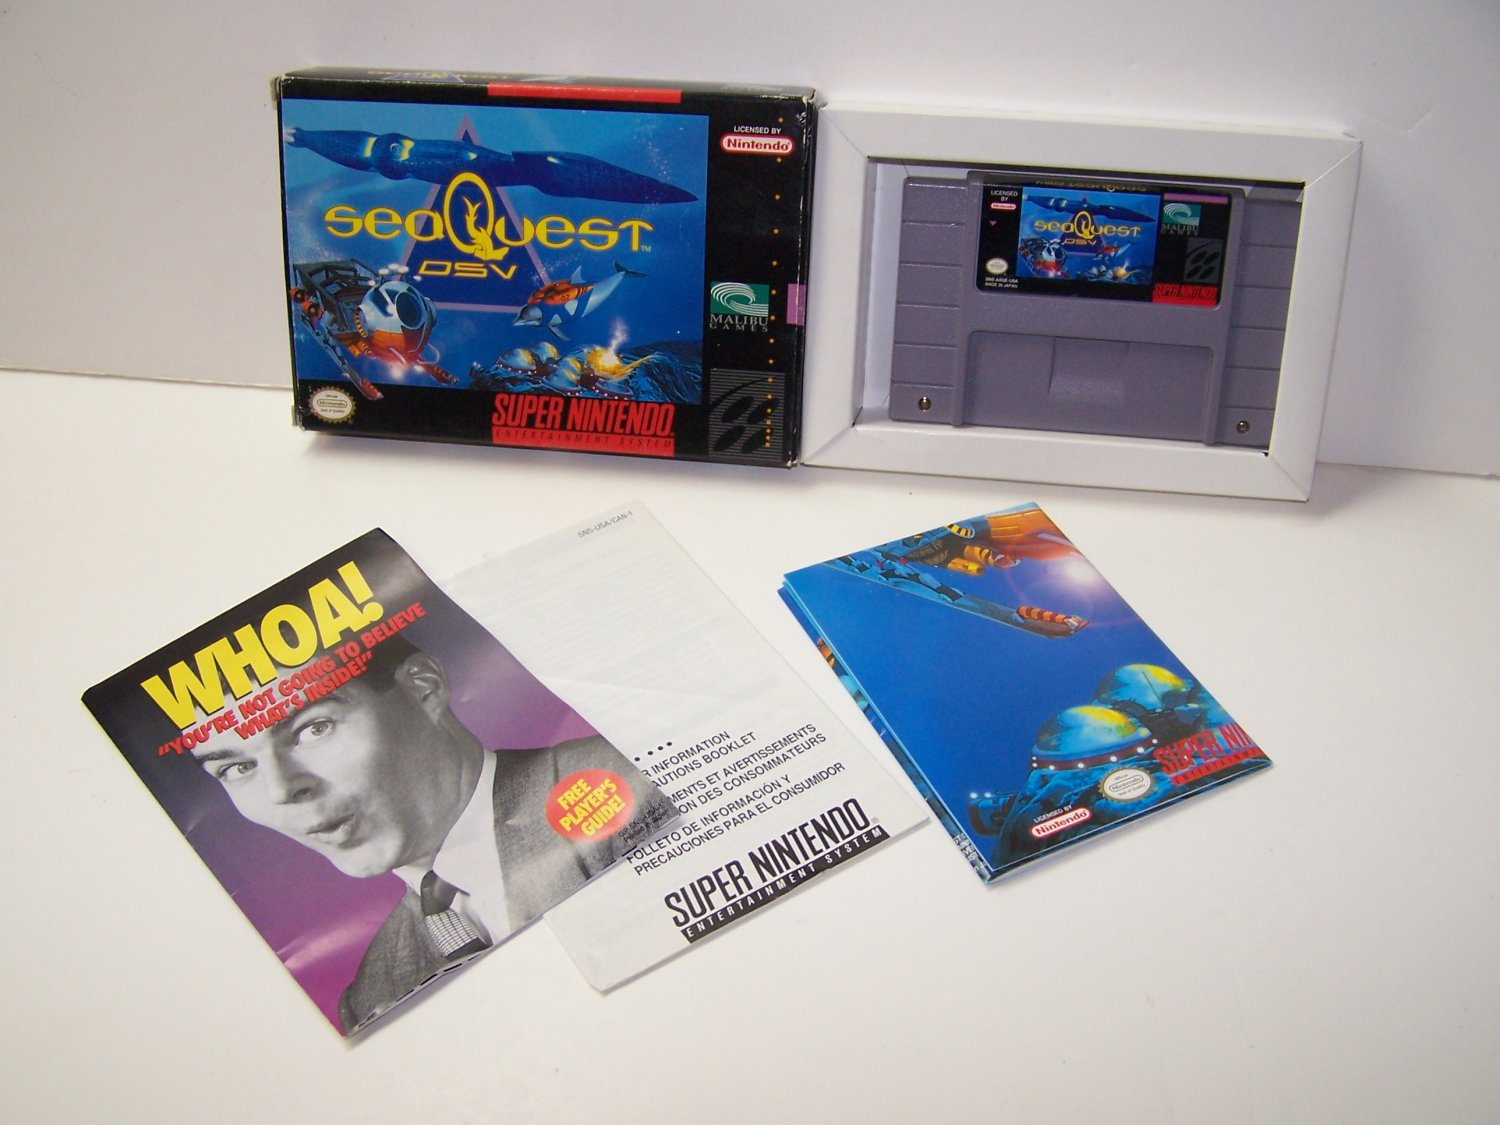 SEAQUEST DSV Super Nintendo Game